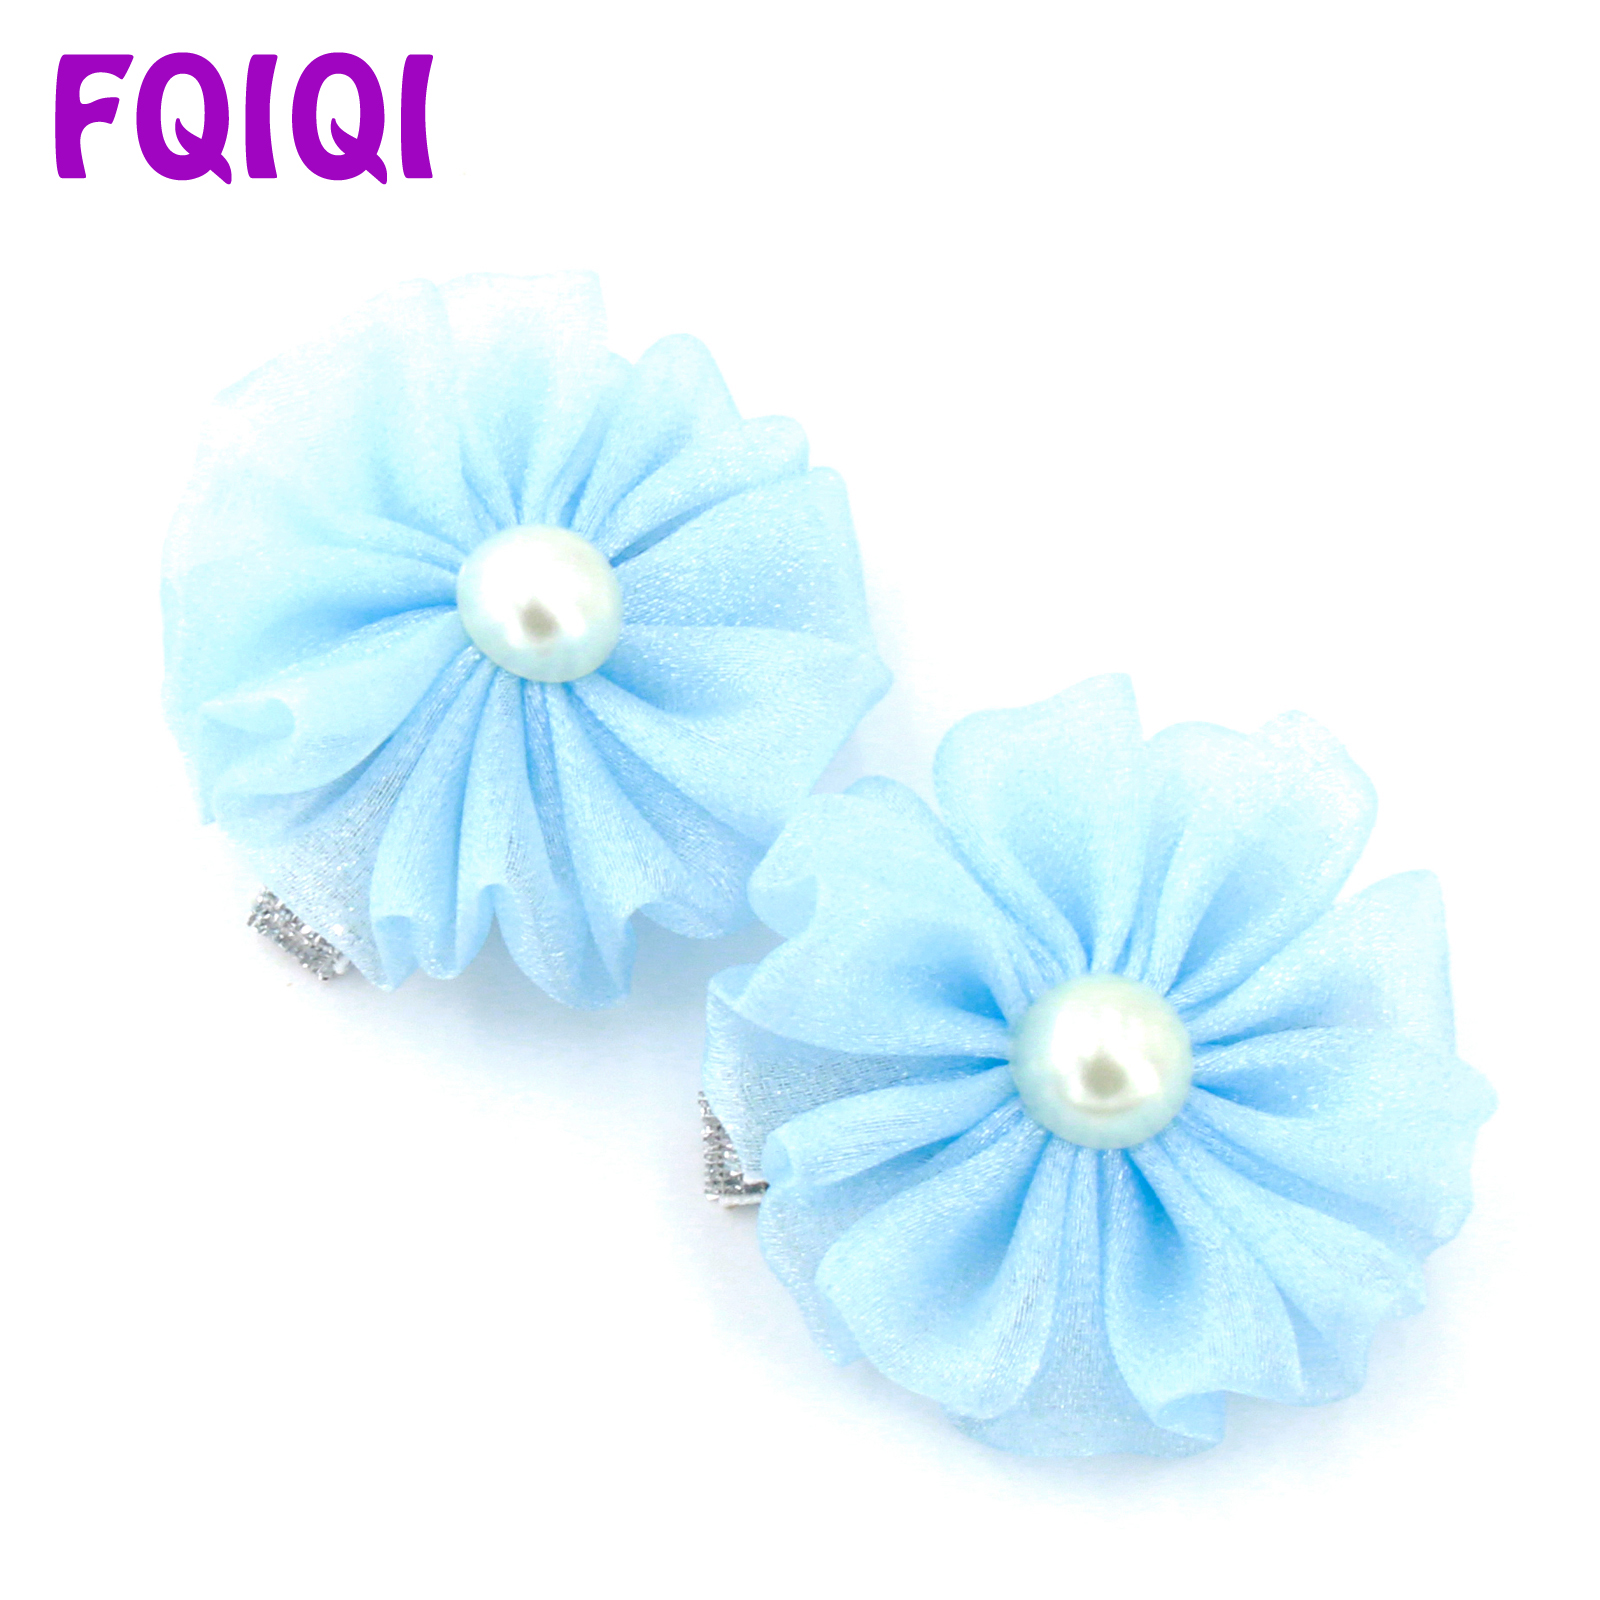 FQIQI 2/Pcs Pearl Shining Yarn Ribbon Handmade Hair Flower Clips For Girl Baby Bows Dance Party Kids Princess Hair Accessories